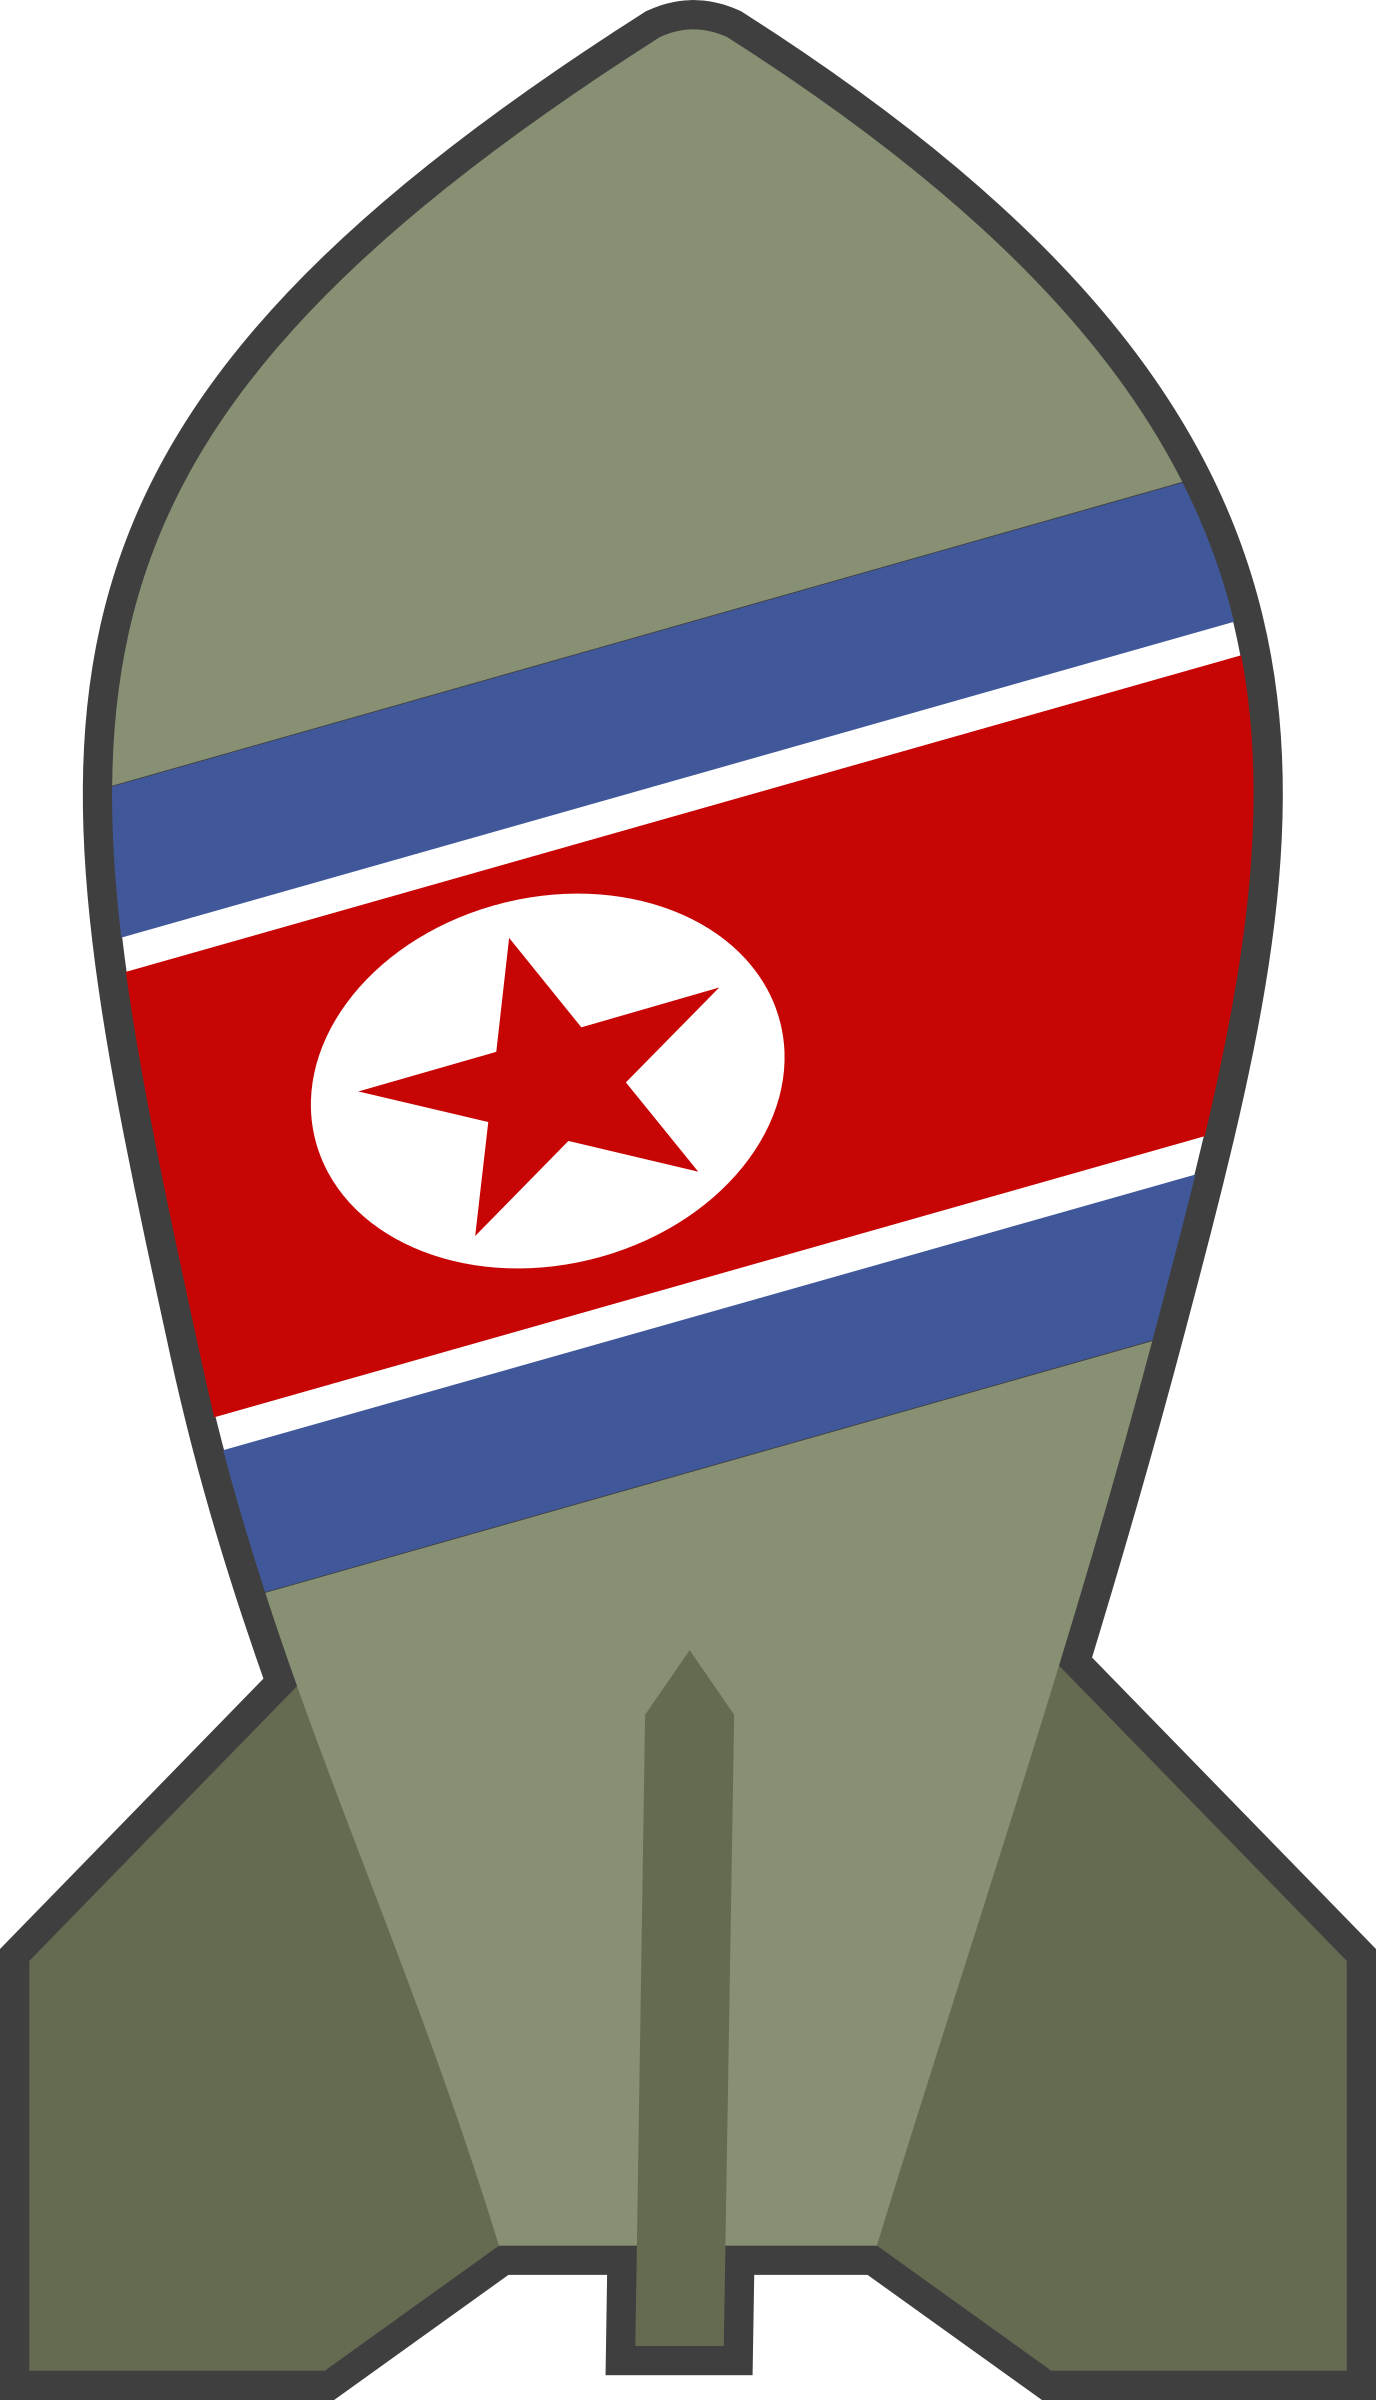 Bomb cartoon png. Simple north korea icons